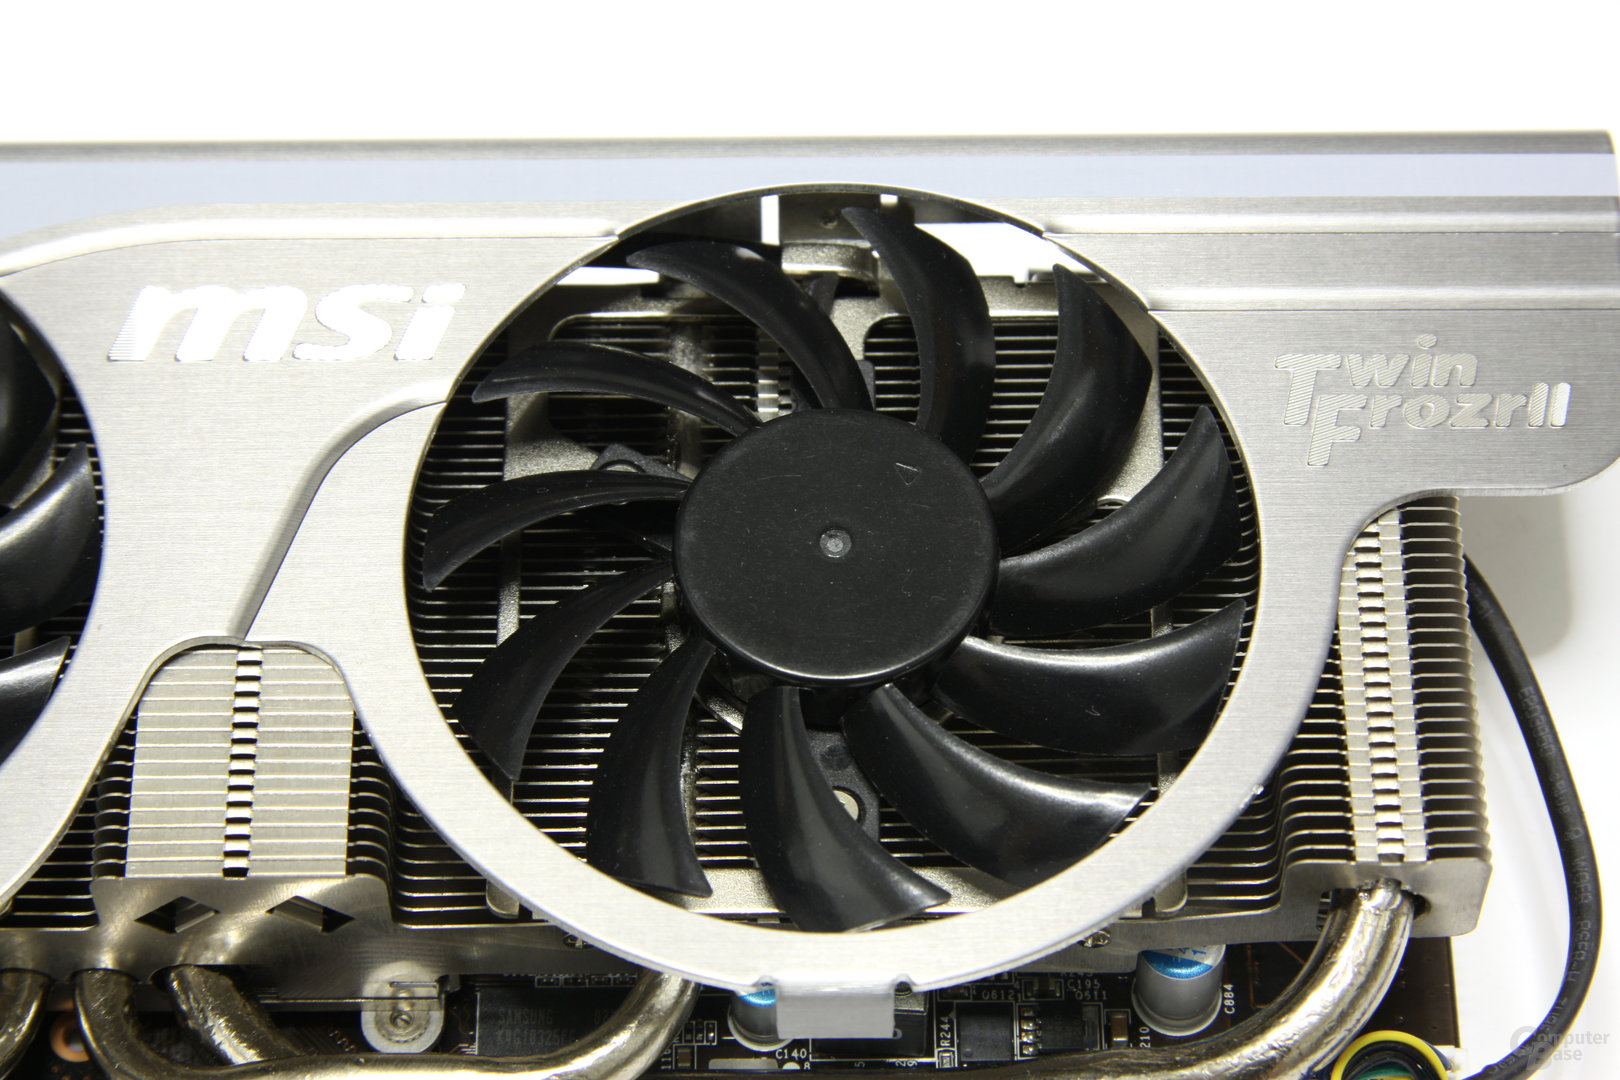 GeForce GTX 460 Hawk Lüfter